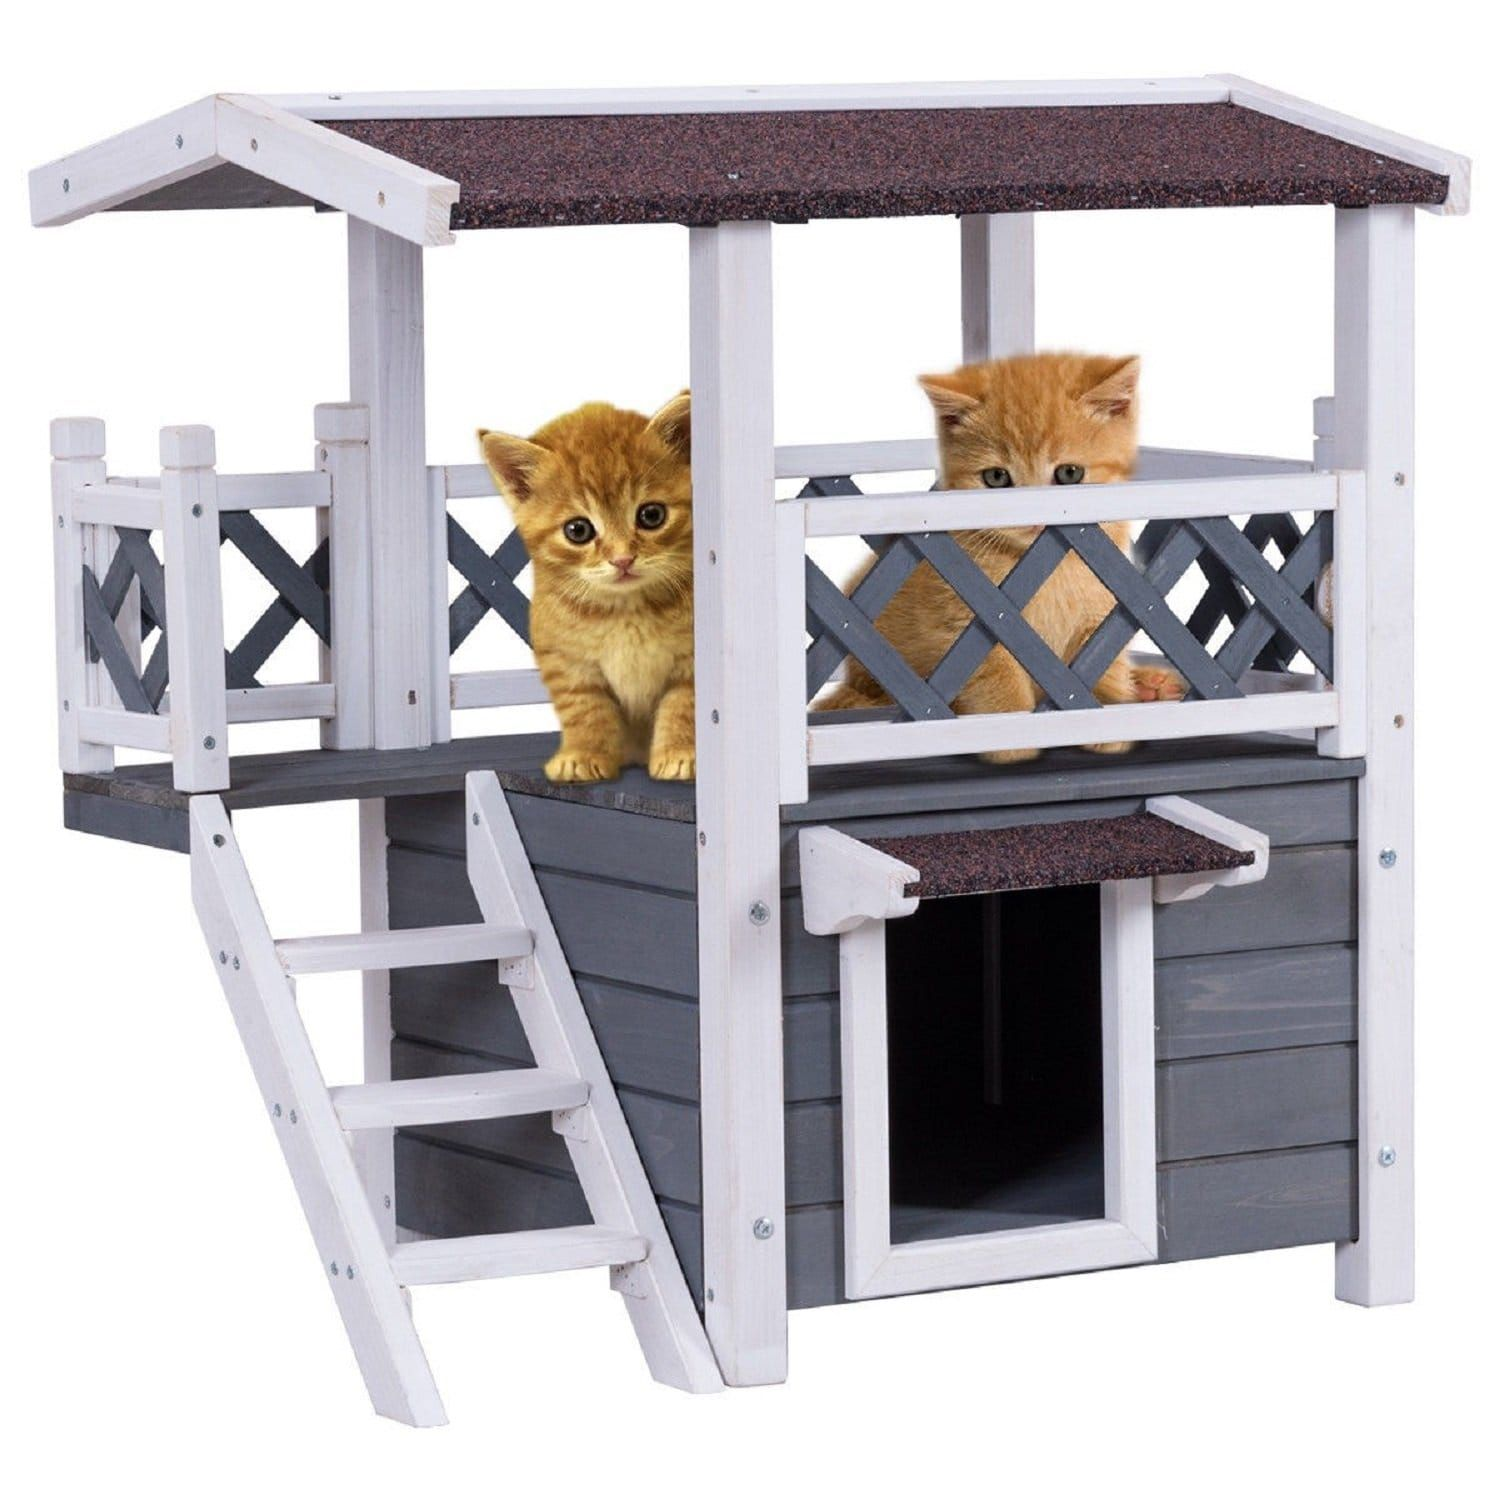 Styles Daddy The Internet S Mart Wooden Cat House Wooden Cat Outdoor Weatherproof